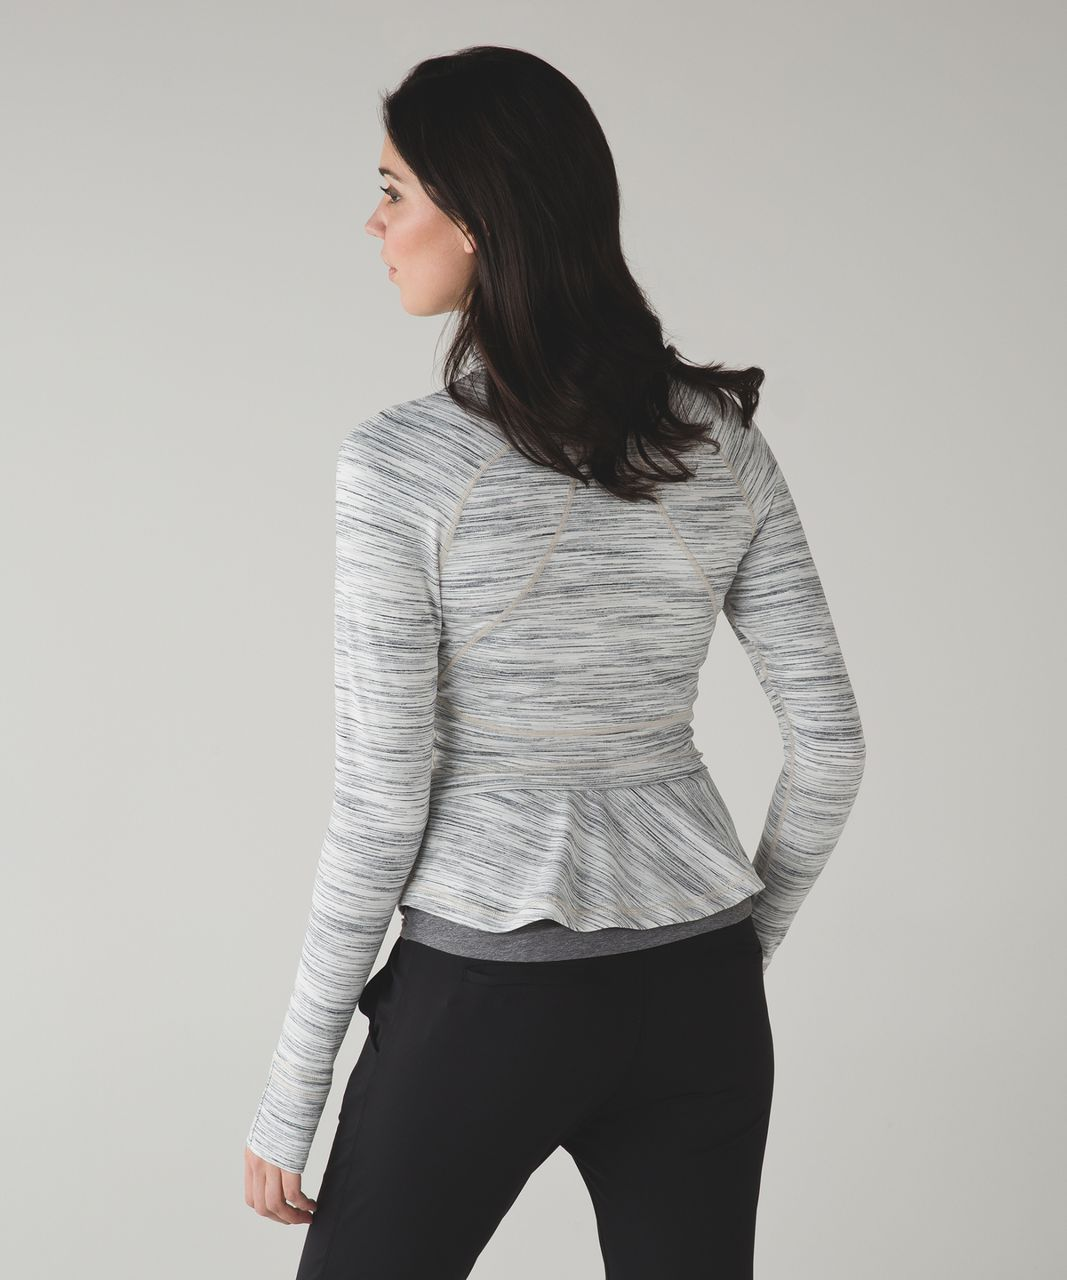 Lululemon Hustle In Your Bustle Jacket - Space Dye Camo White Silver Spoon